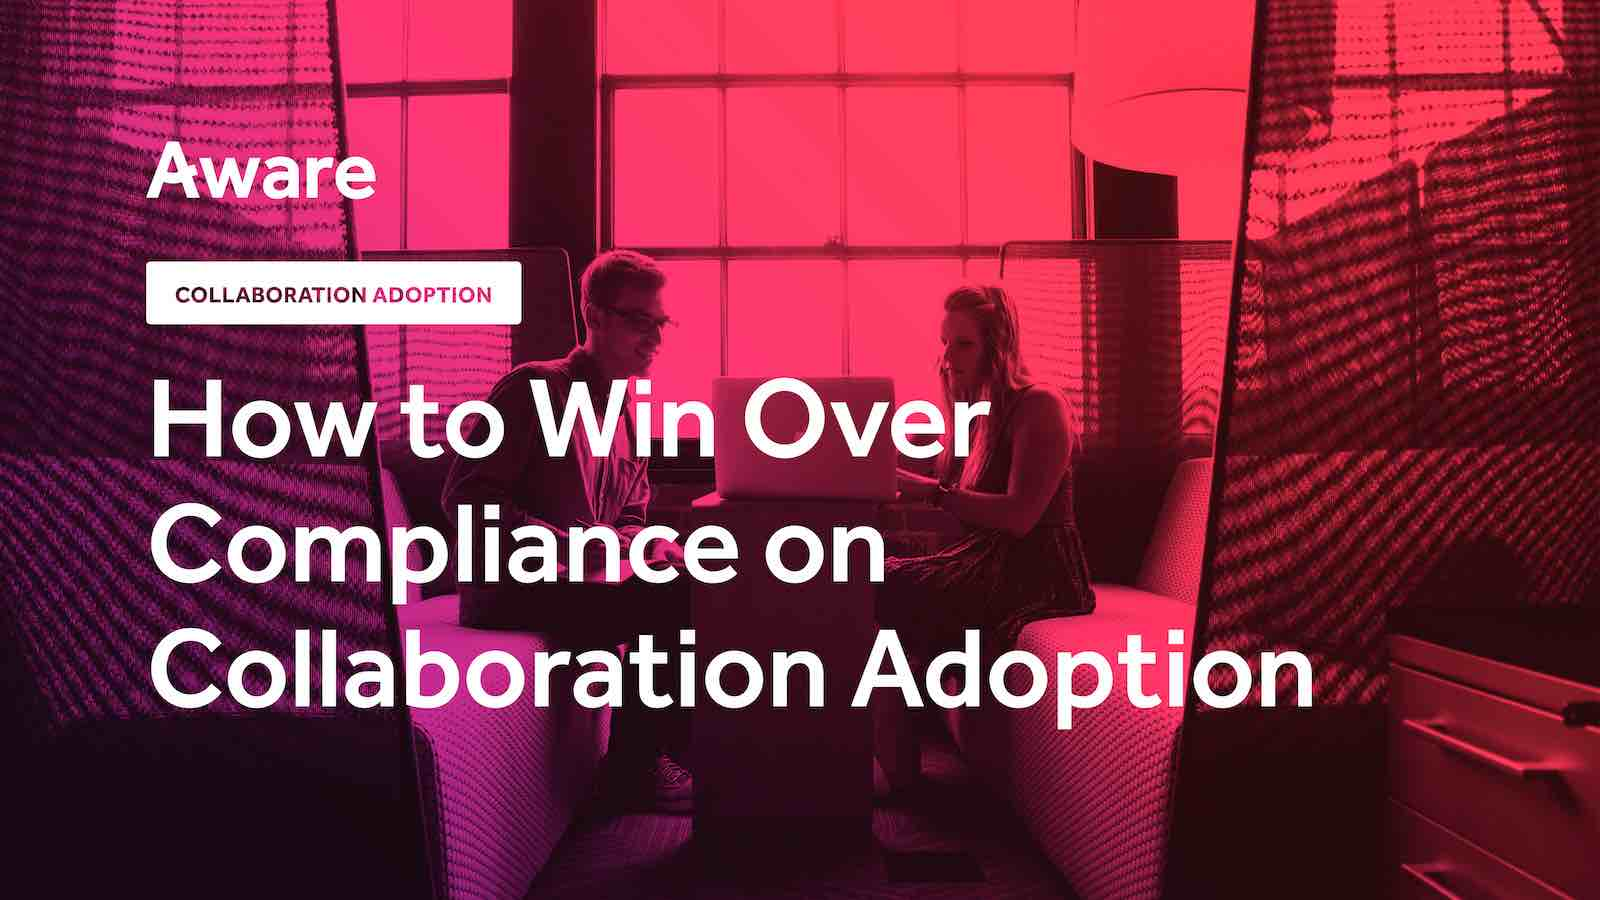 How to Win Over Compliance on Collaboration Adoption